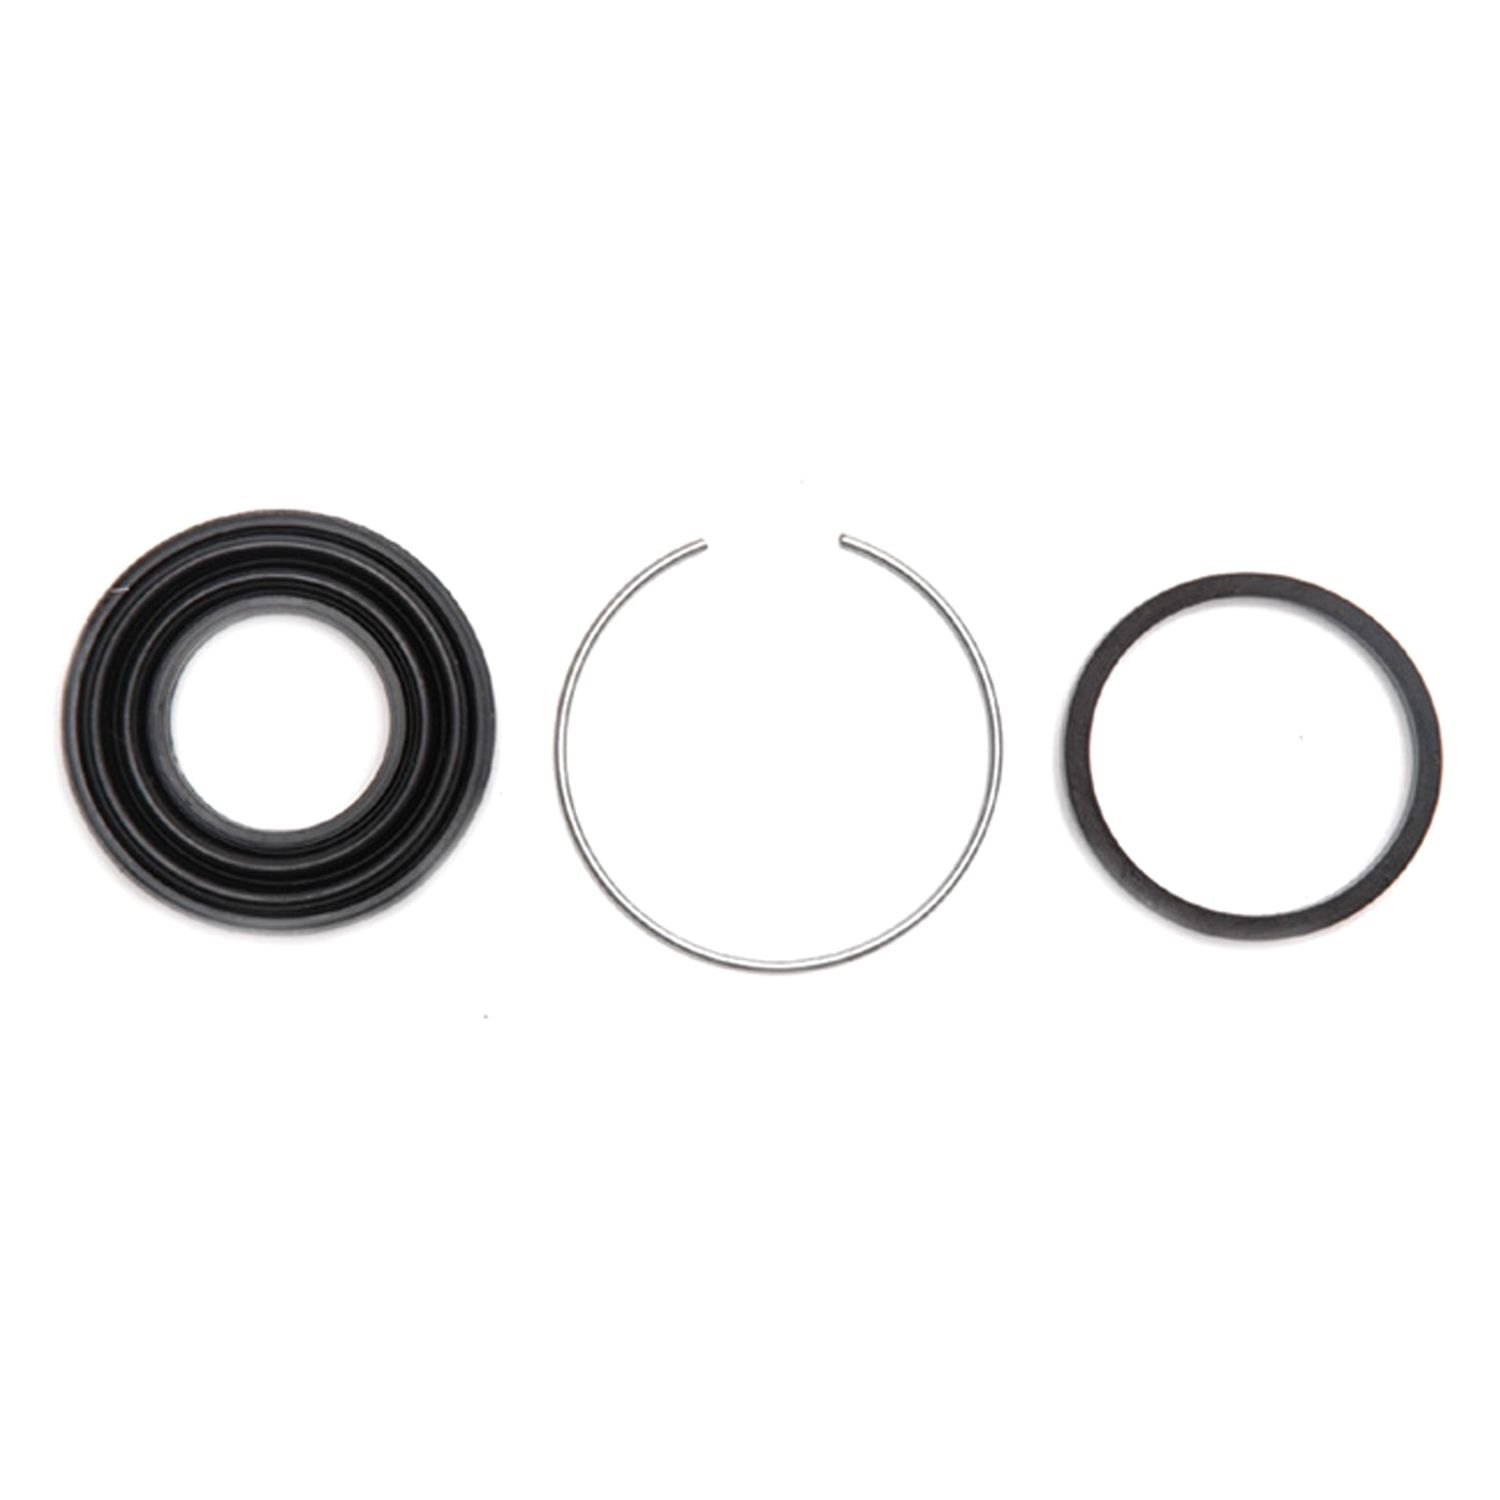 ACDelco 18H1190 Professional Rear Disc Brake Caliper Rubber Bushing Kit with Boots and Seals